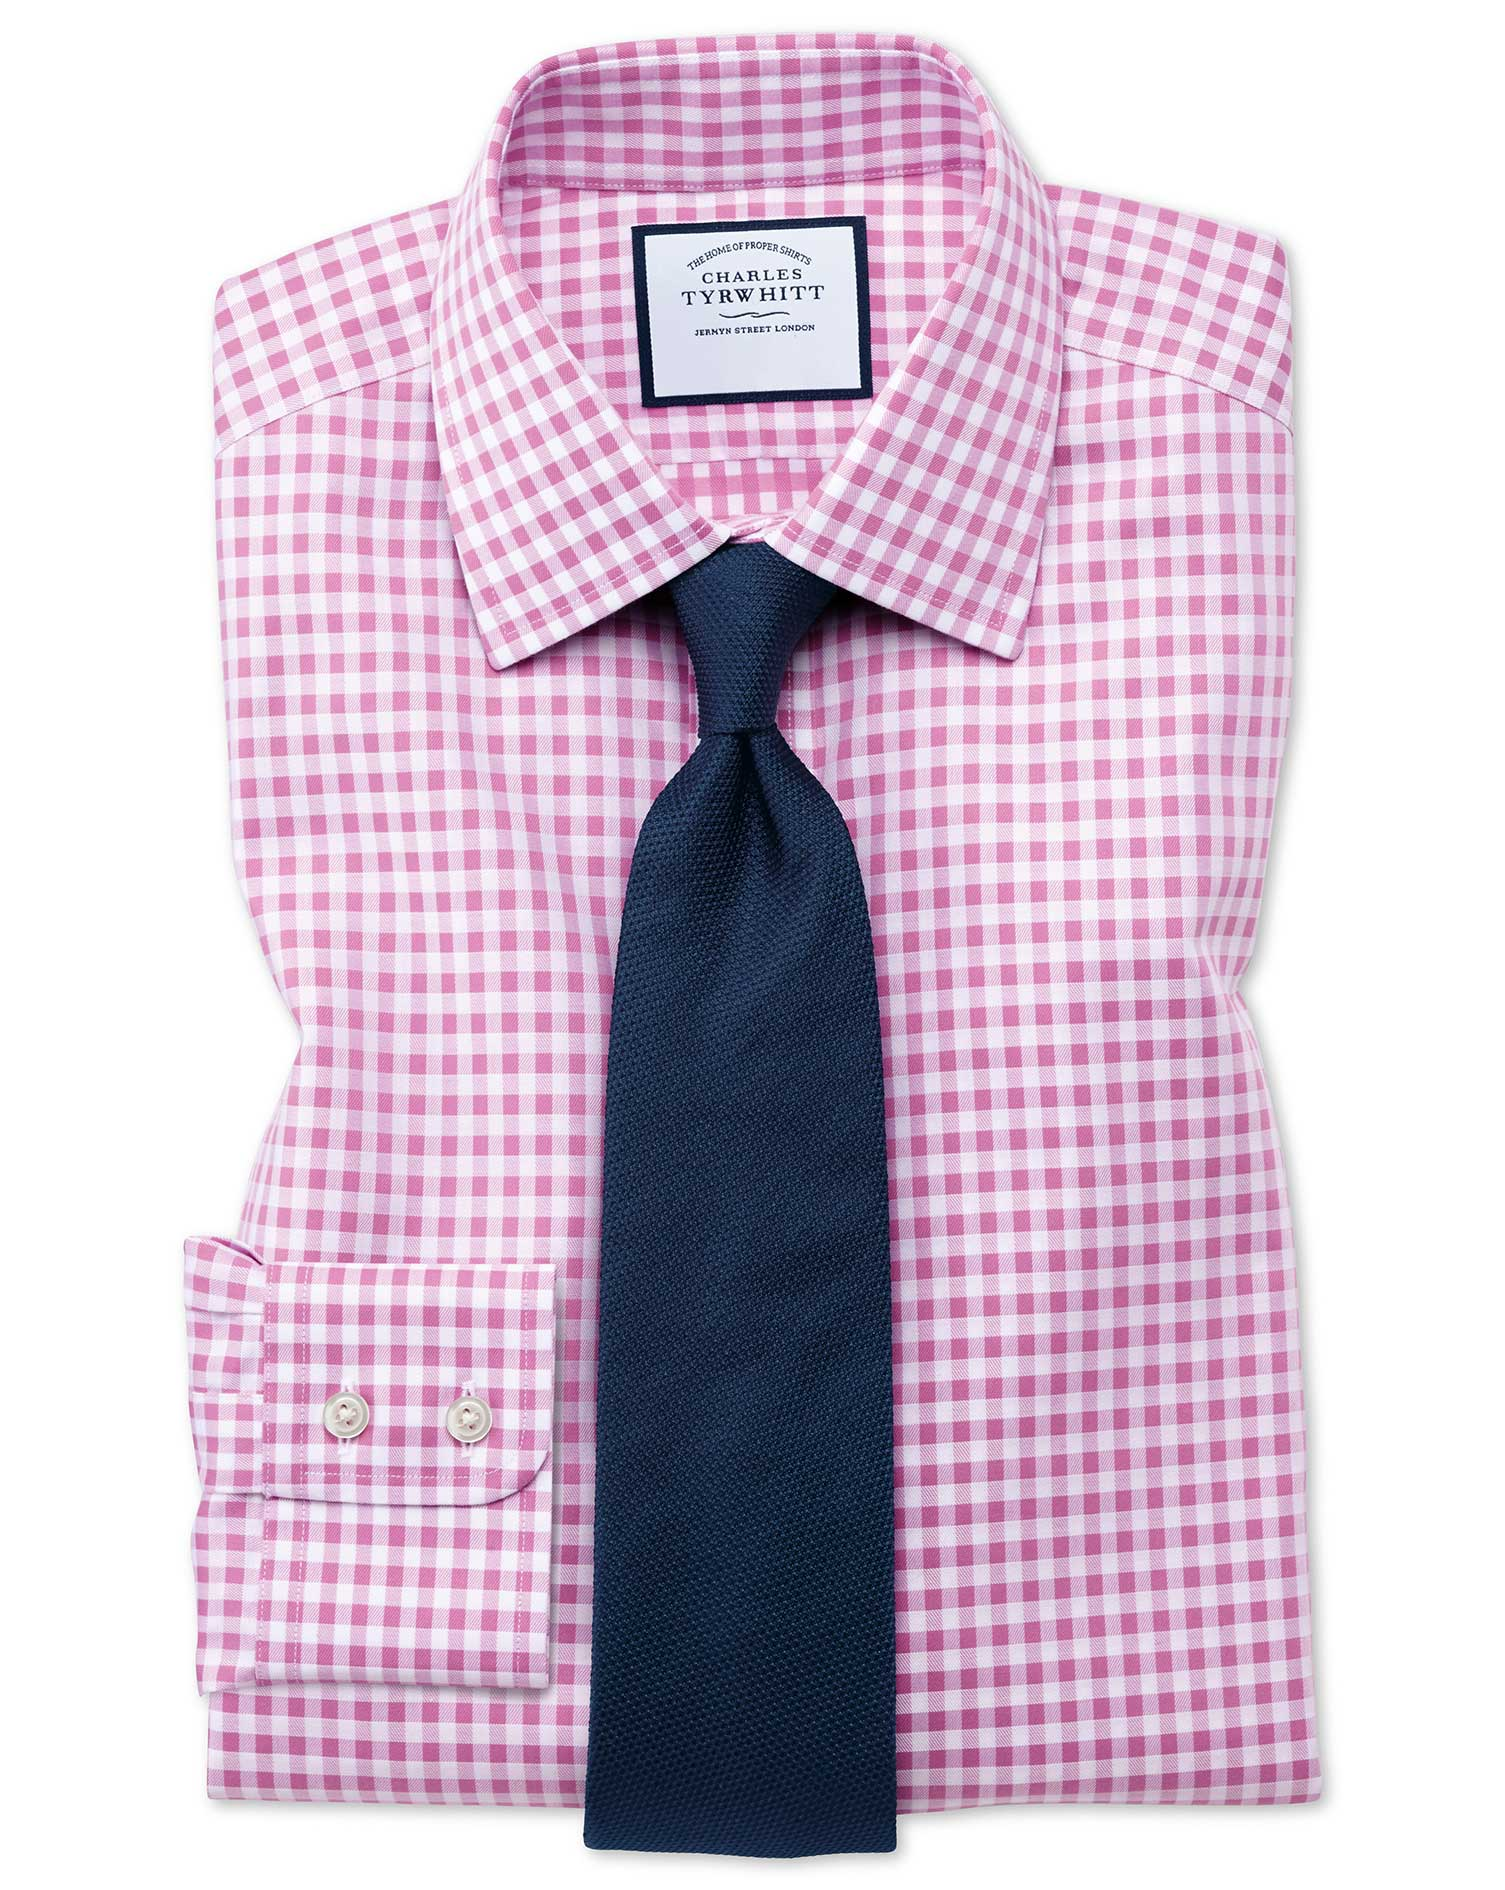 Slim Fit Non-Iron Gingham Pink Cotton Formal Shirt Single Cuff Size 16/35 by Charles Tyrwhitt